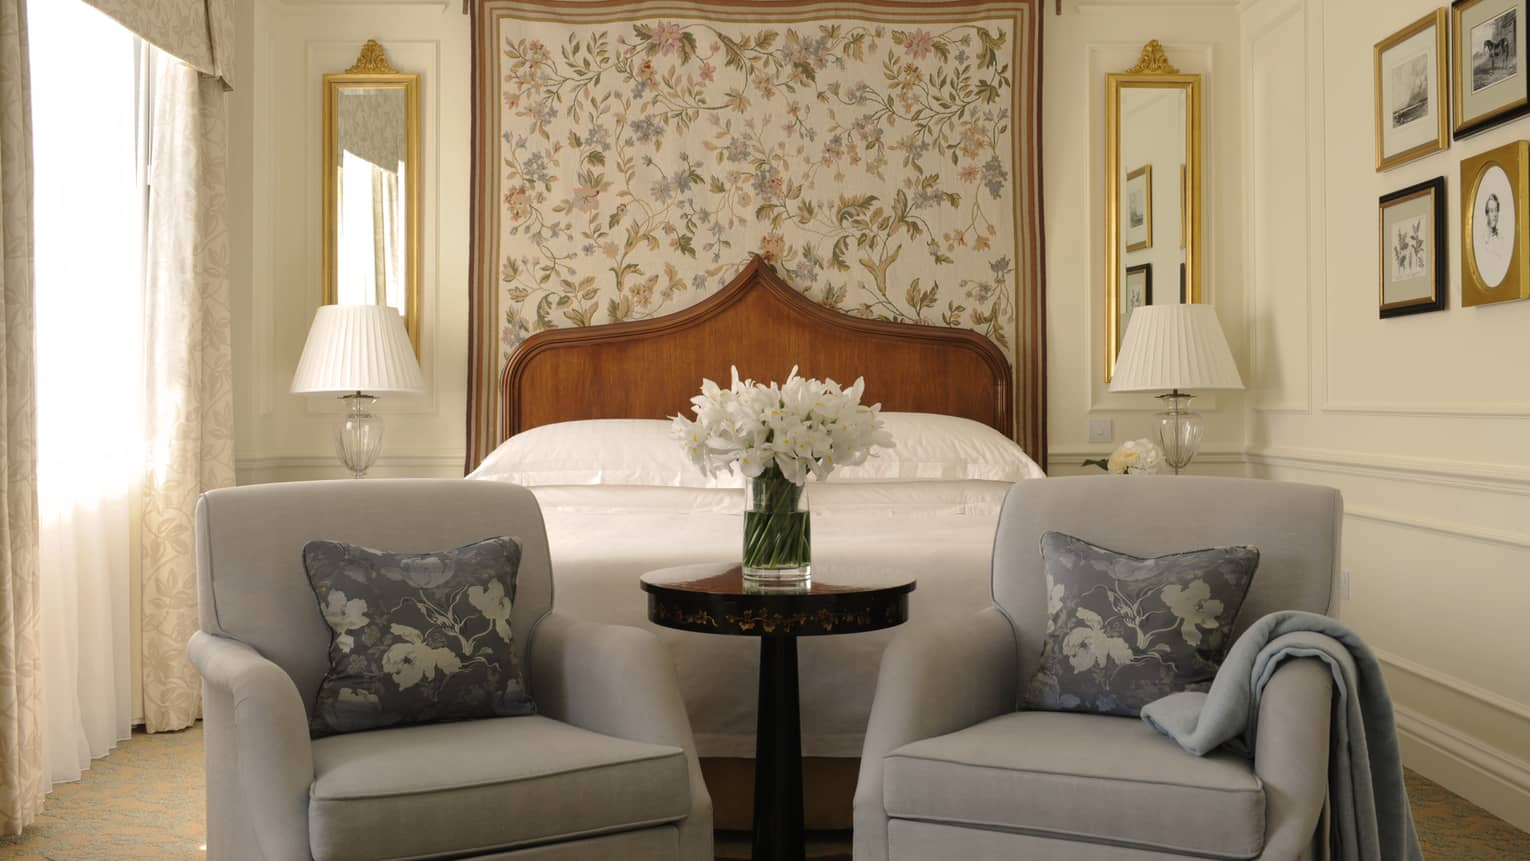 Two plush armchairs, fresh white flowers at foot of hotel bed, floral headboard